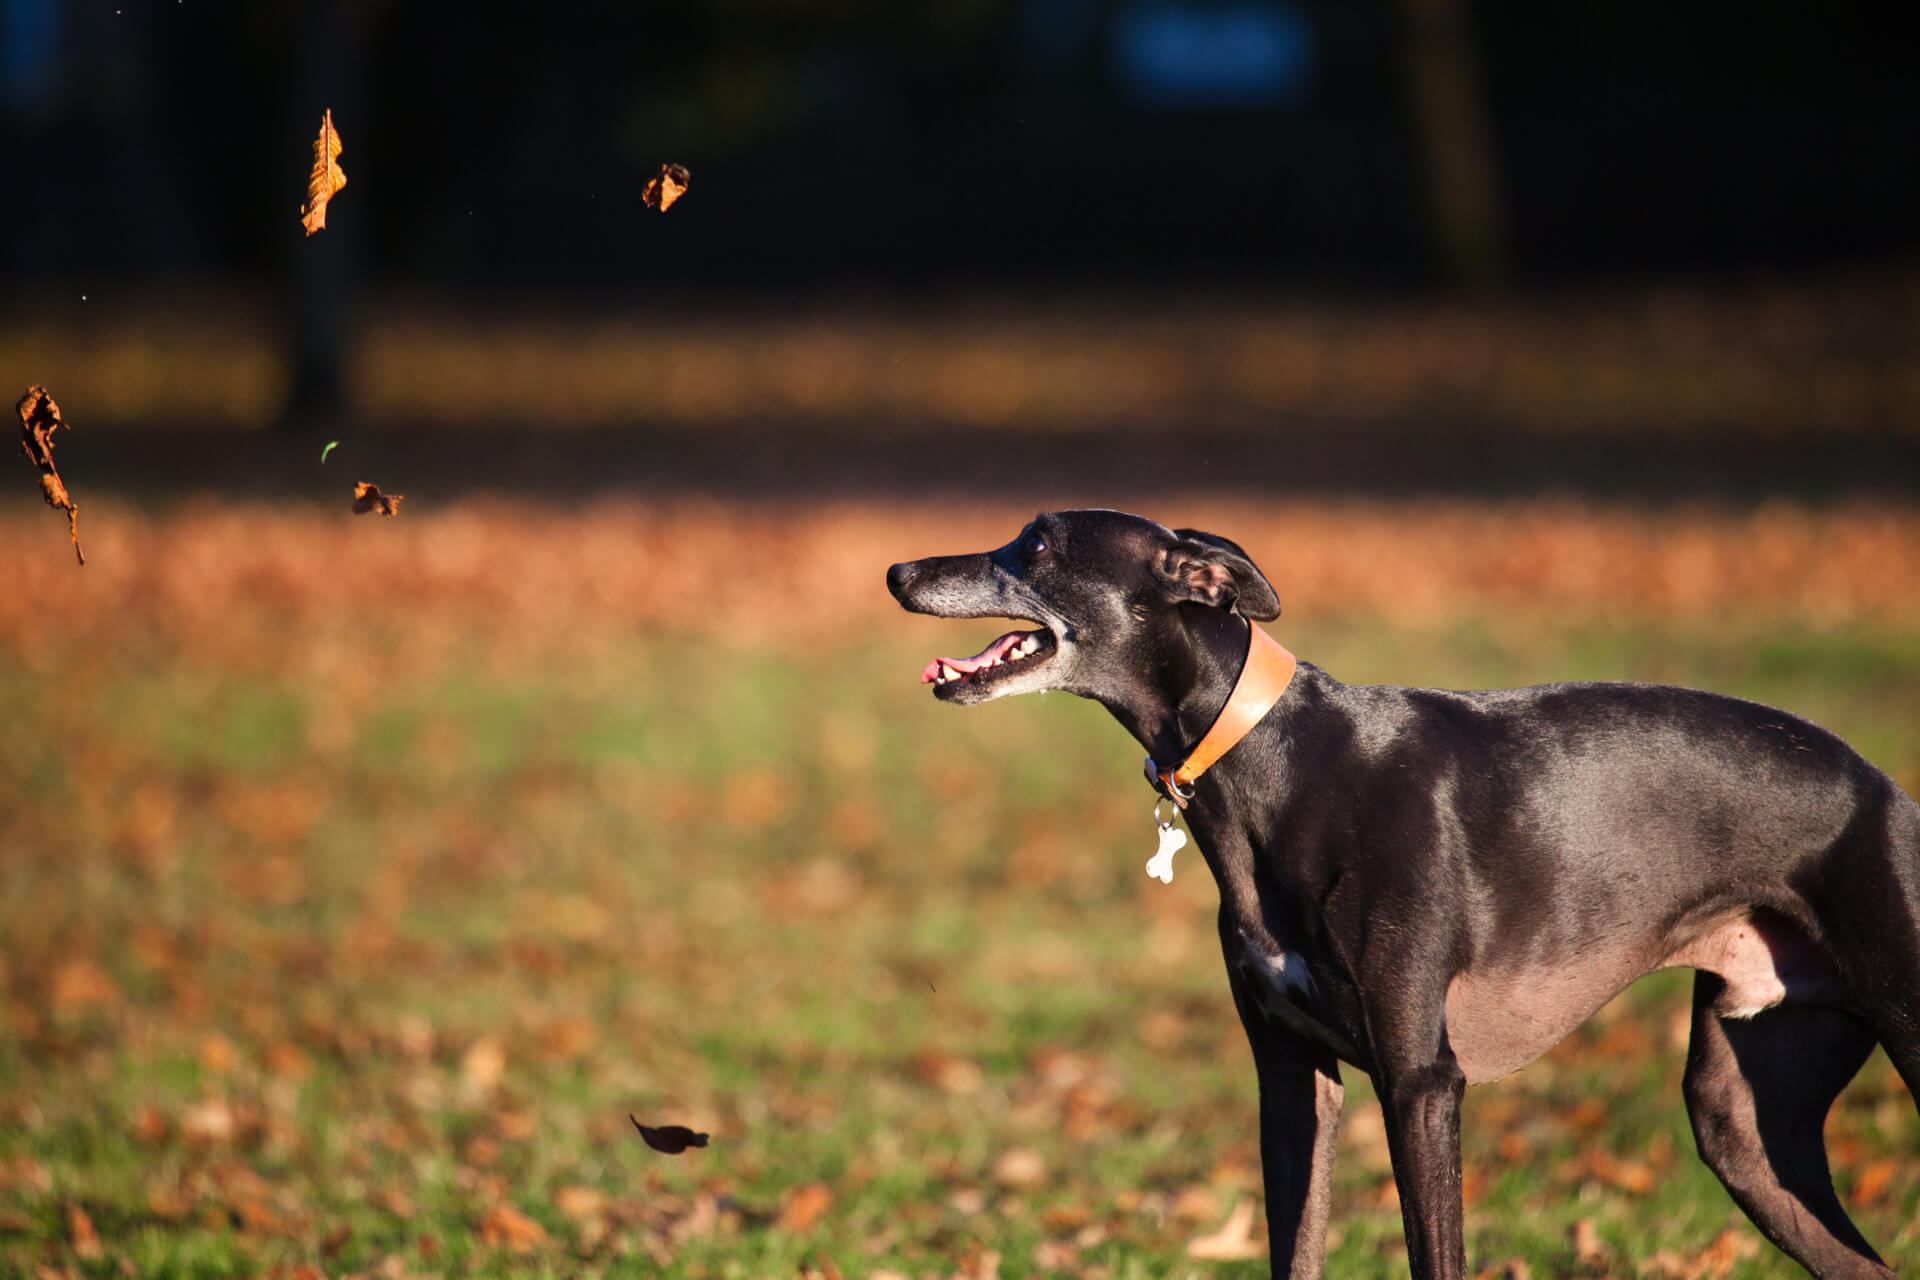 dog looking at leaves blowing in the wind